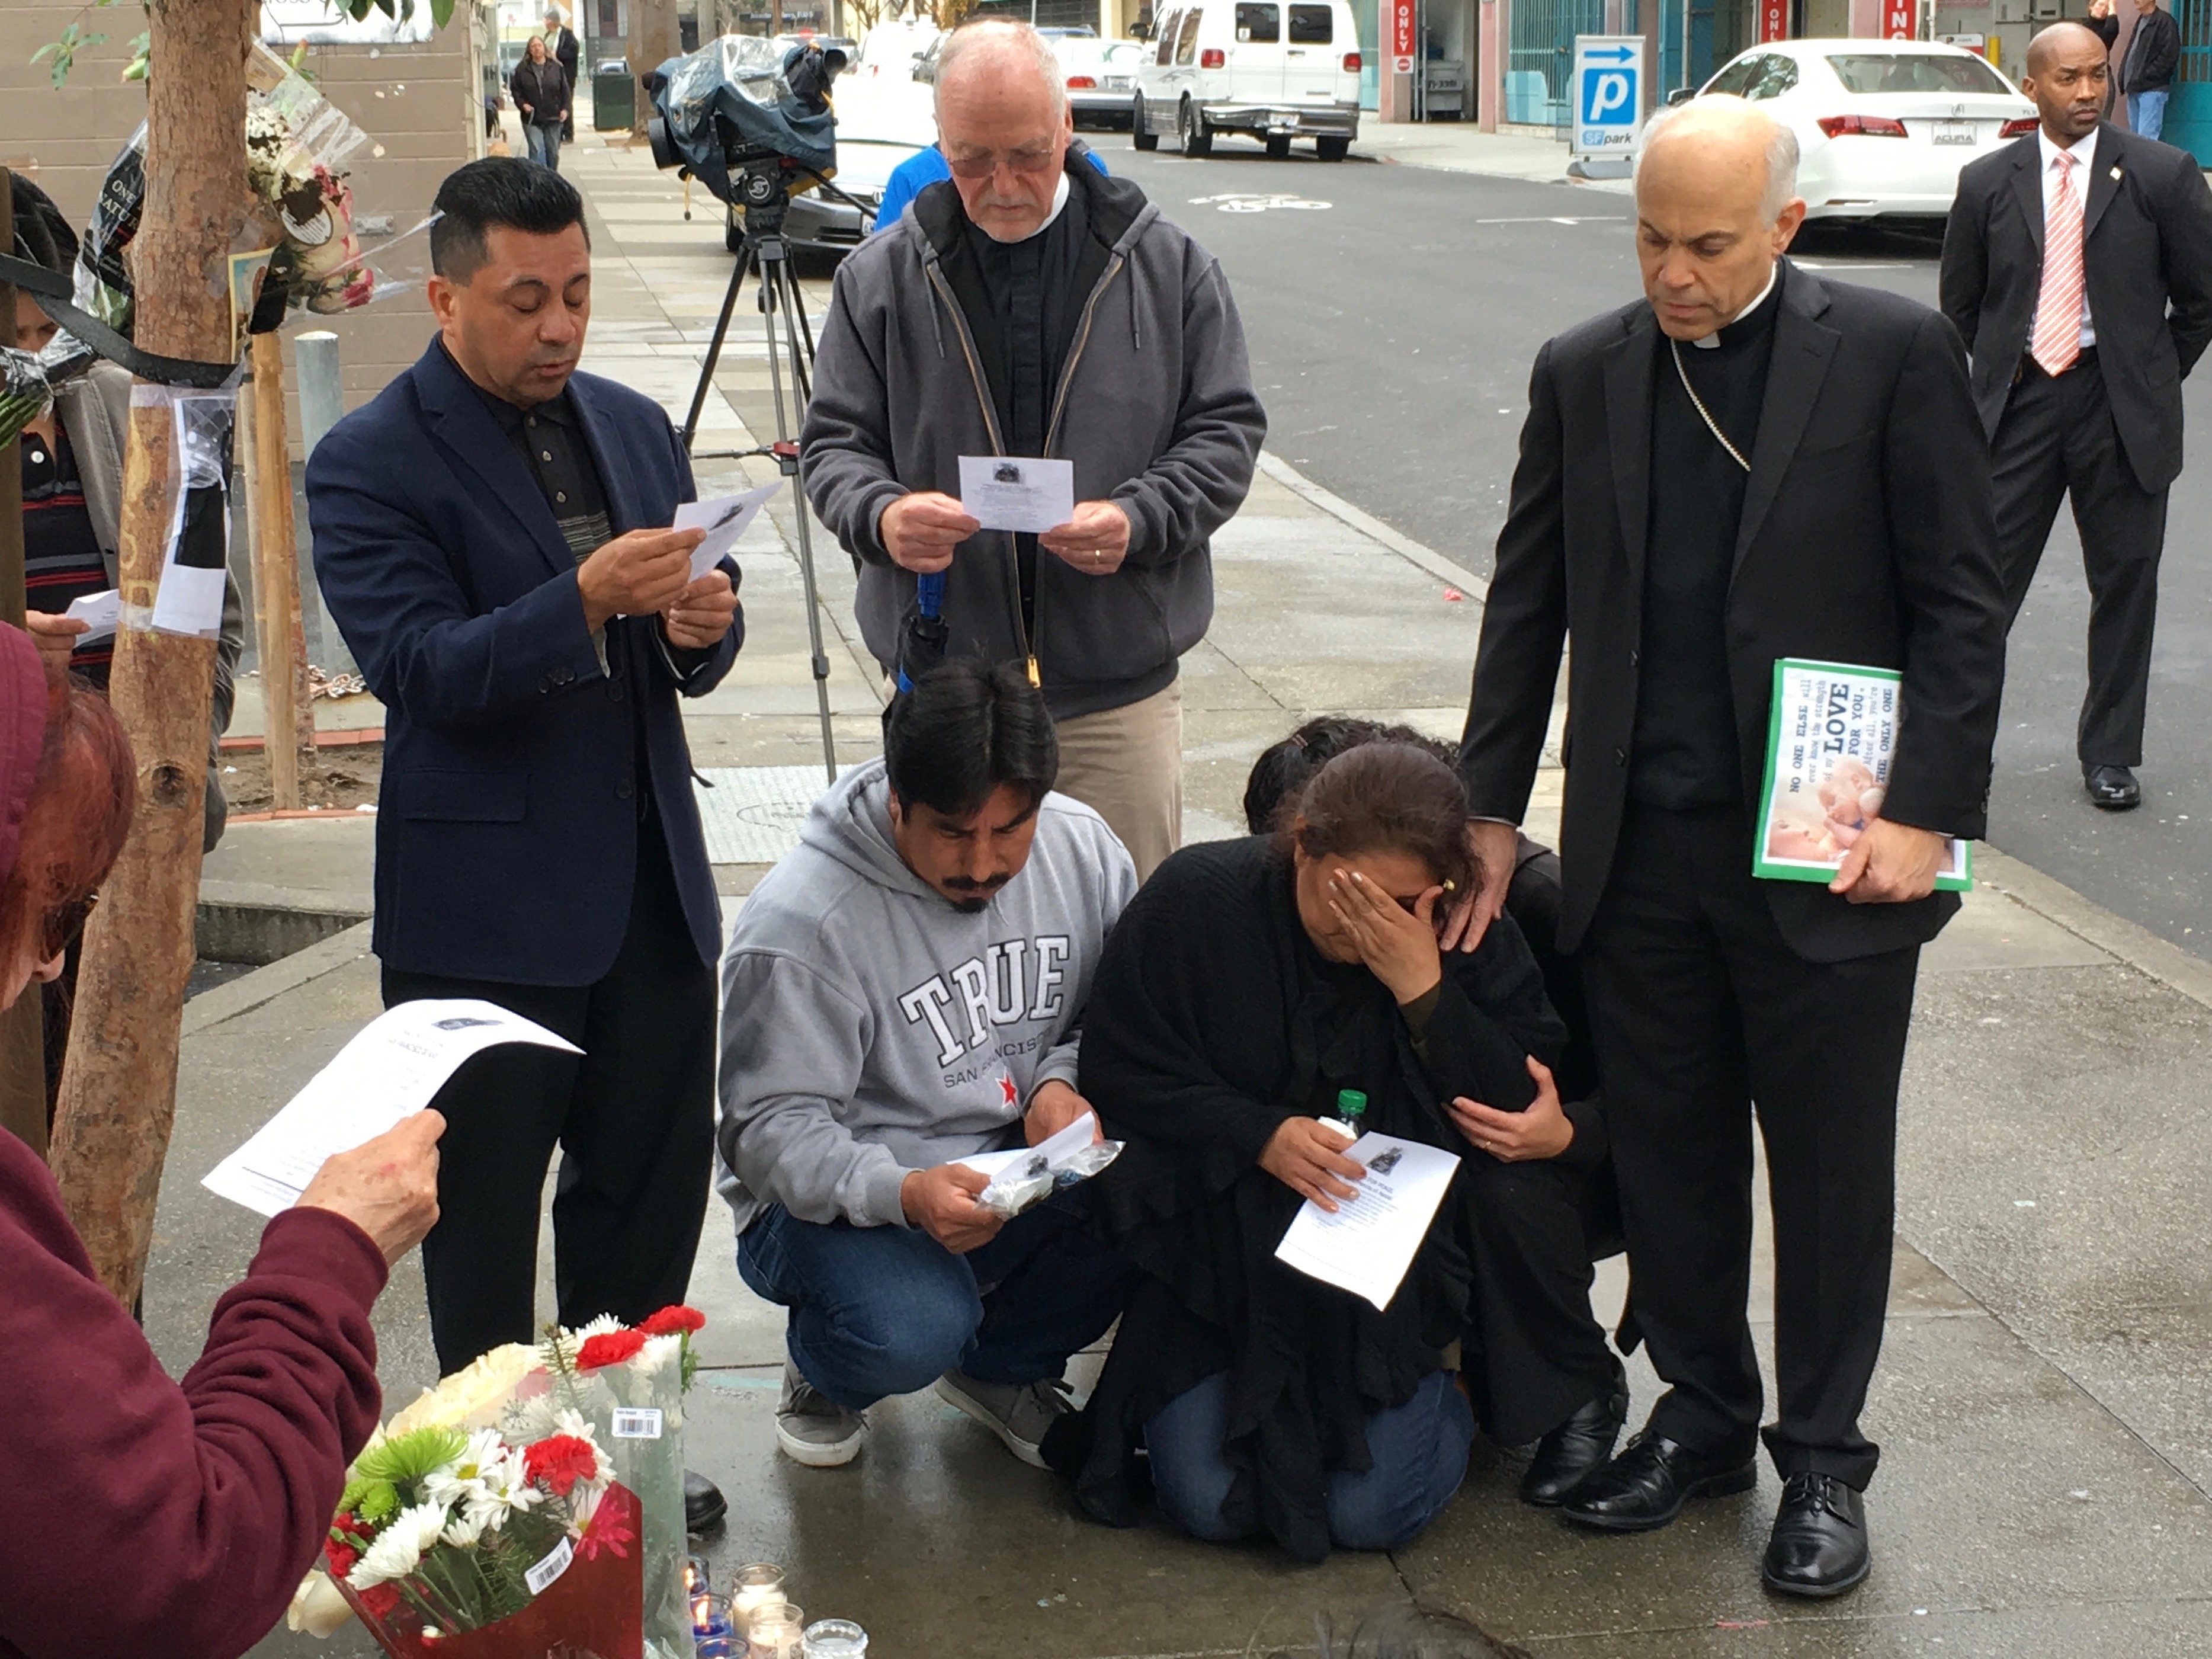 Family Remembers 26-Year-Old Slain in SF Mission